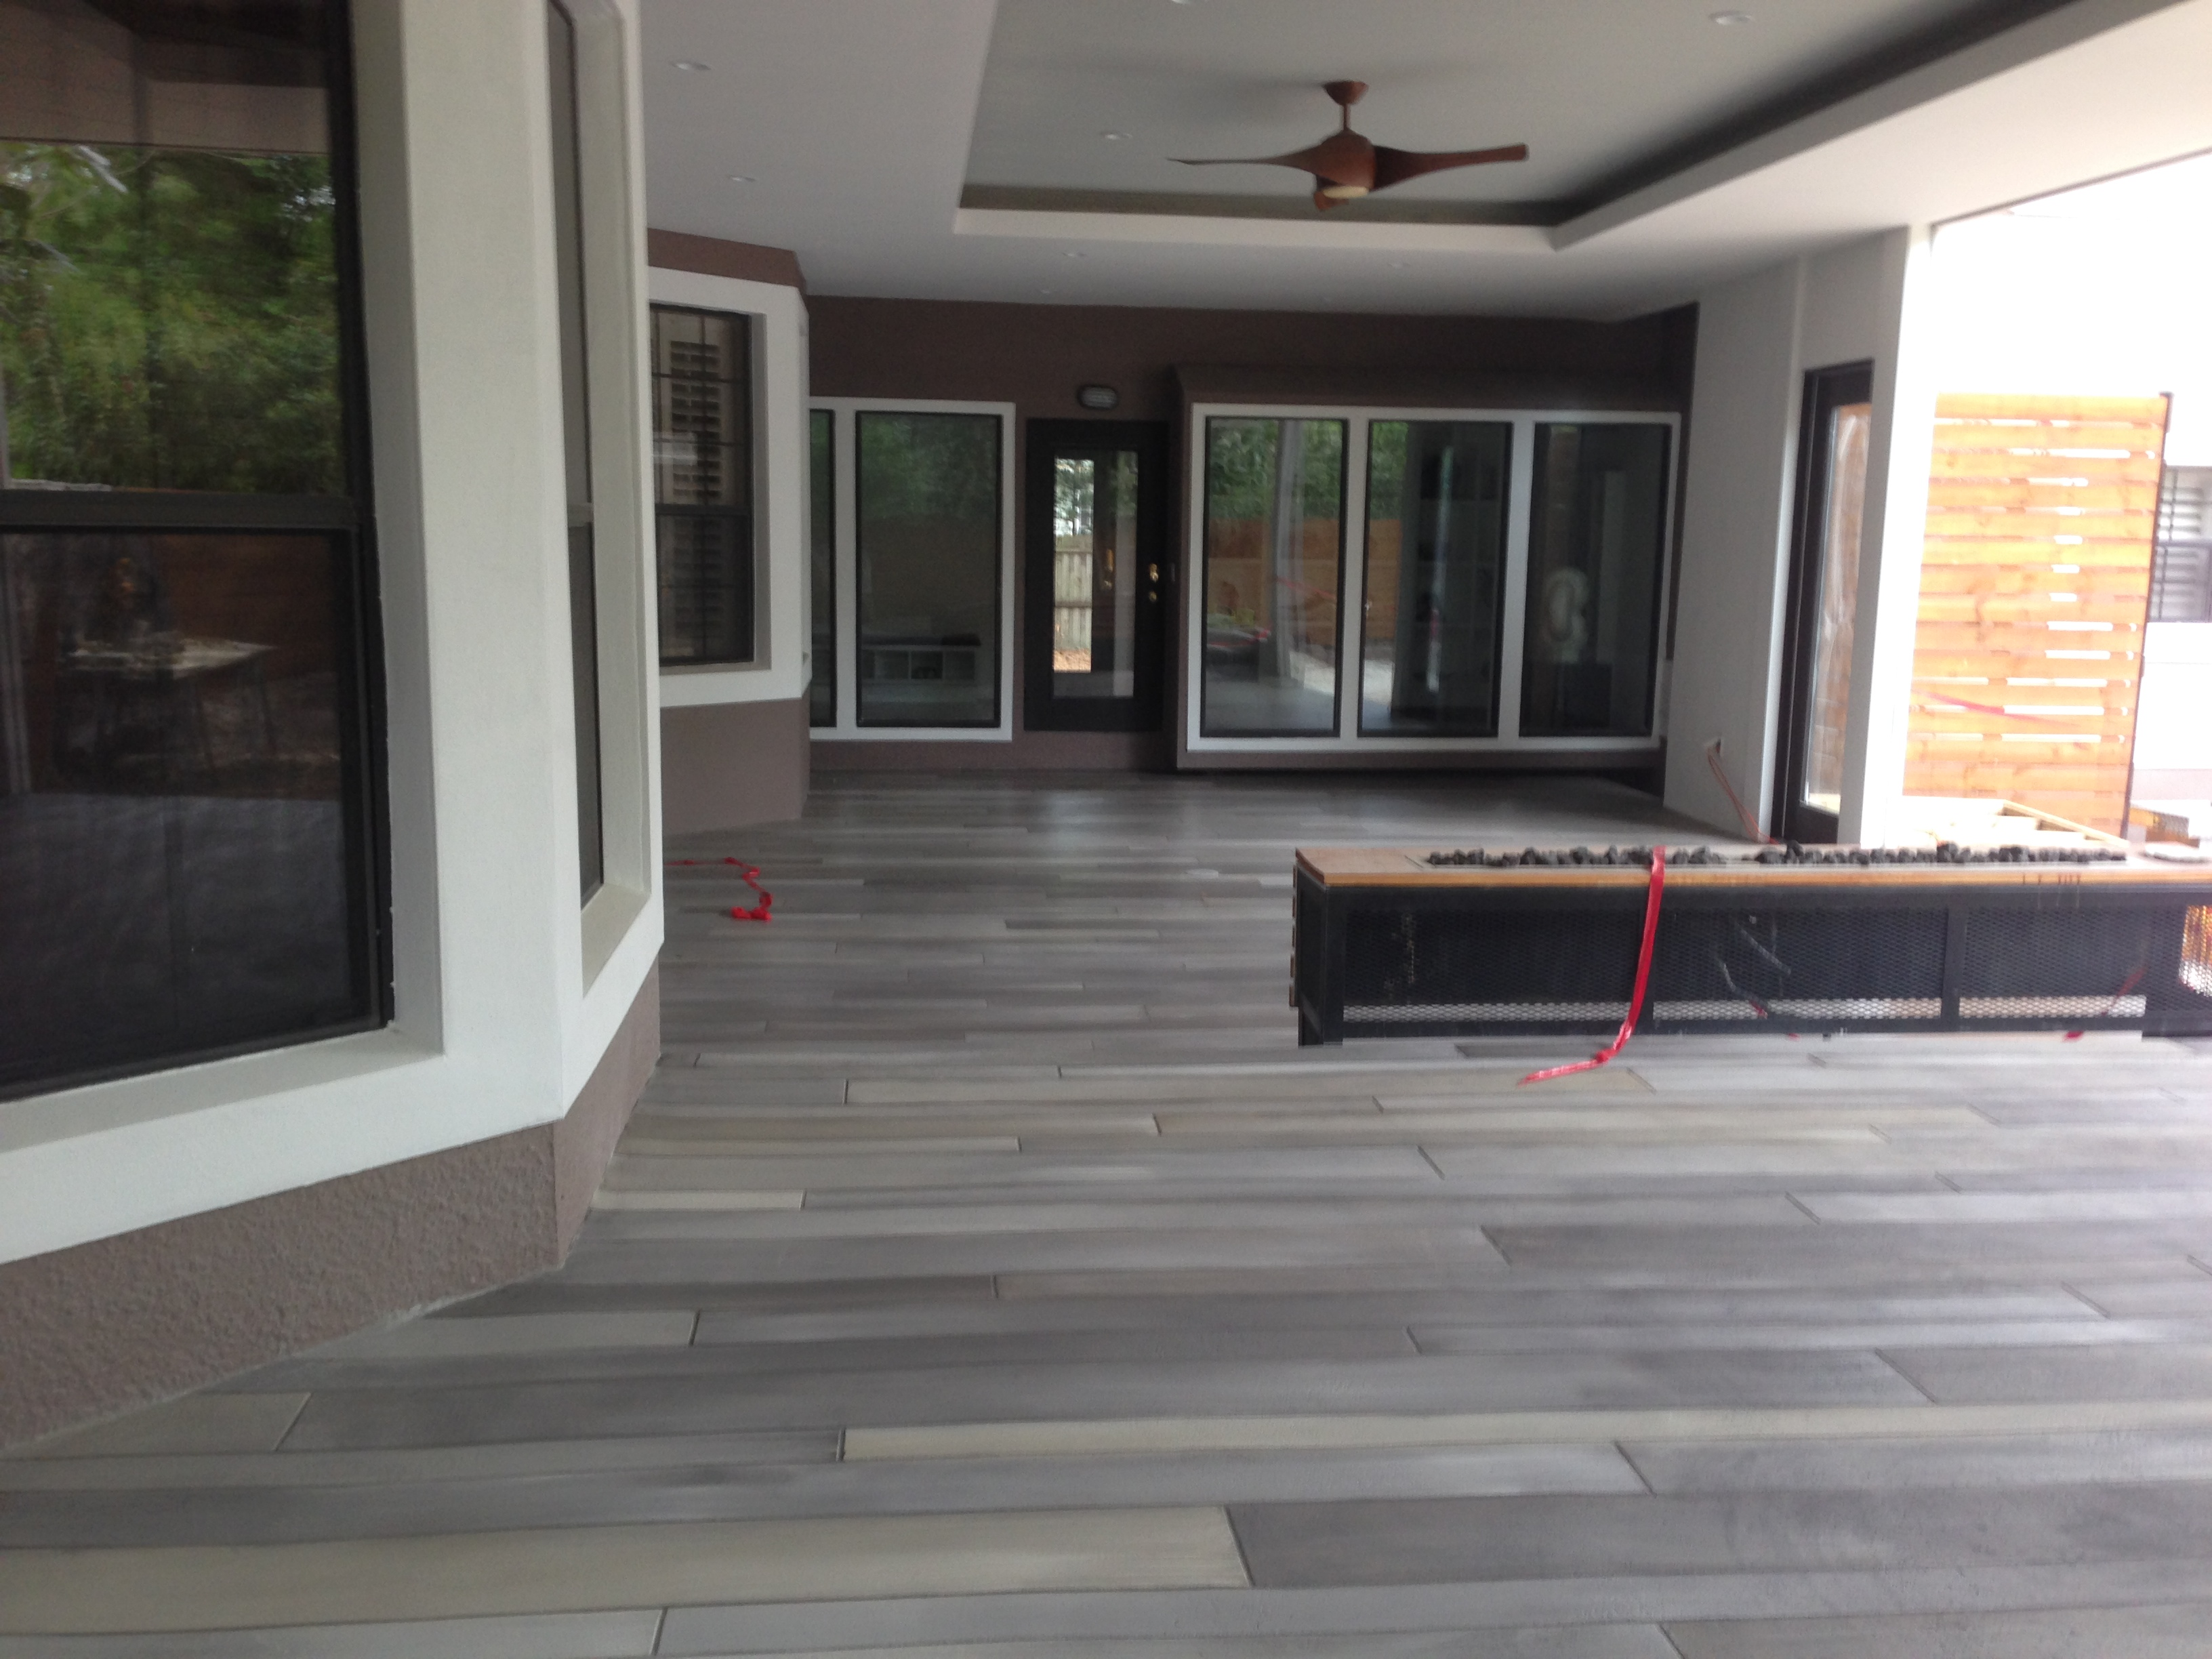 This Plain Ordinary Bare Concrete Patio Got A Sleek And Modern Makeover With Stunning Contemporary Linear Tile In Muted Charcoal Palette